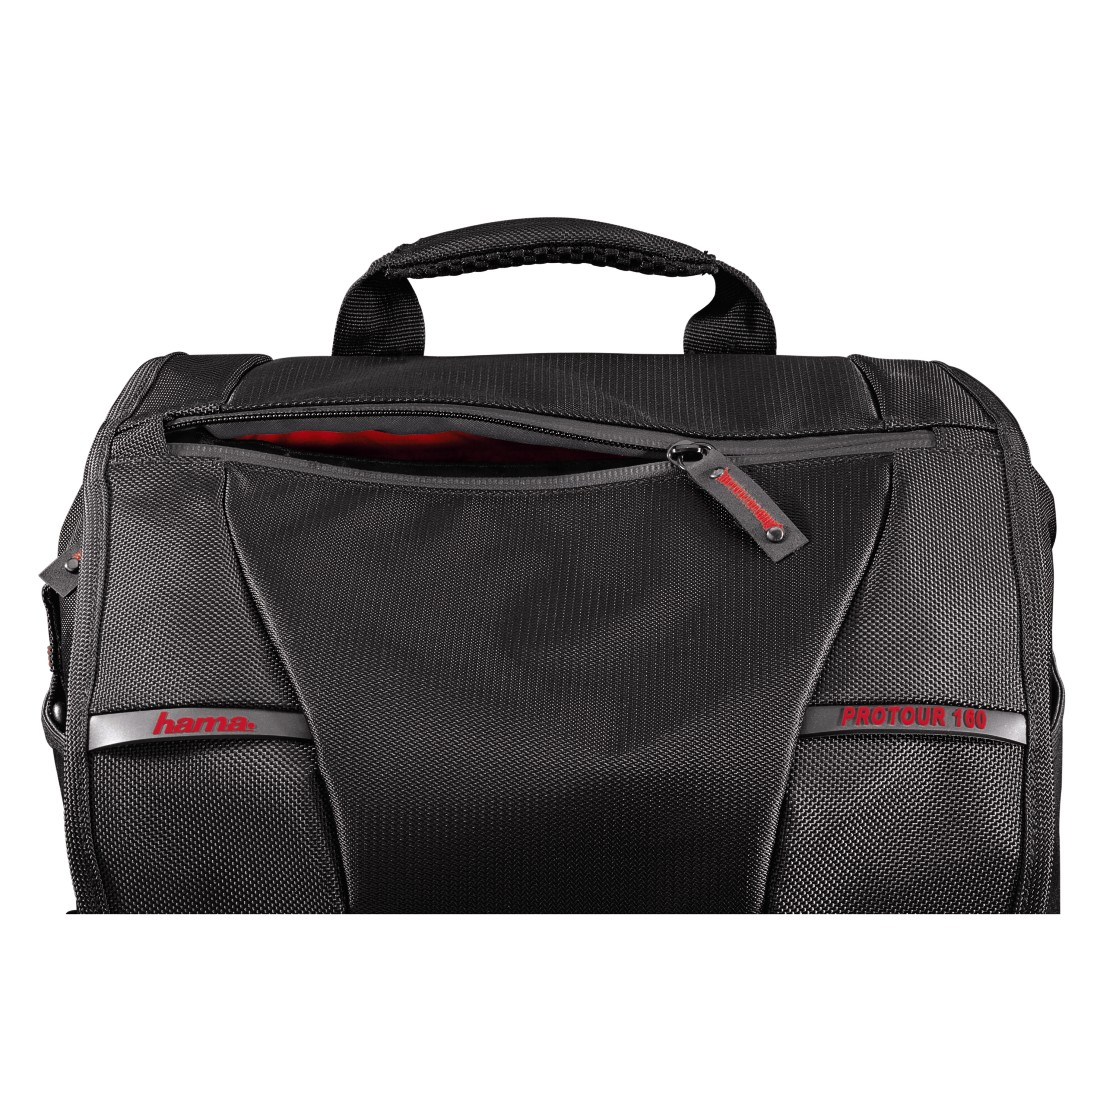 dex9 High-Res Detail 9 - Hama, Protour Camera Bag, 200, black